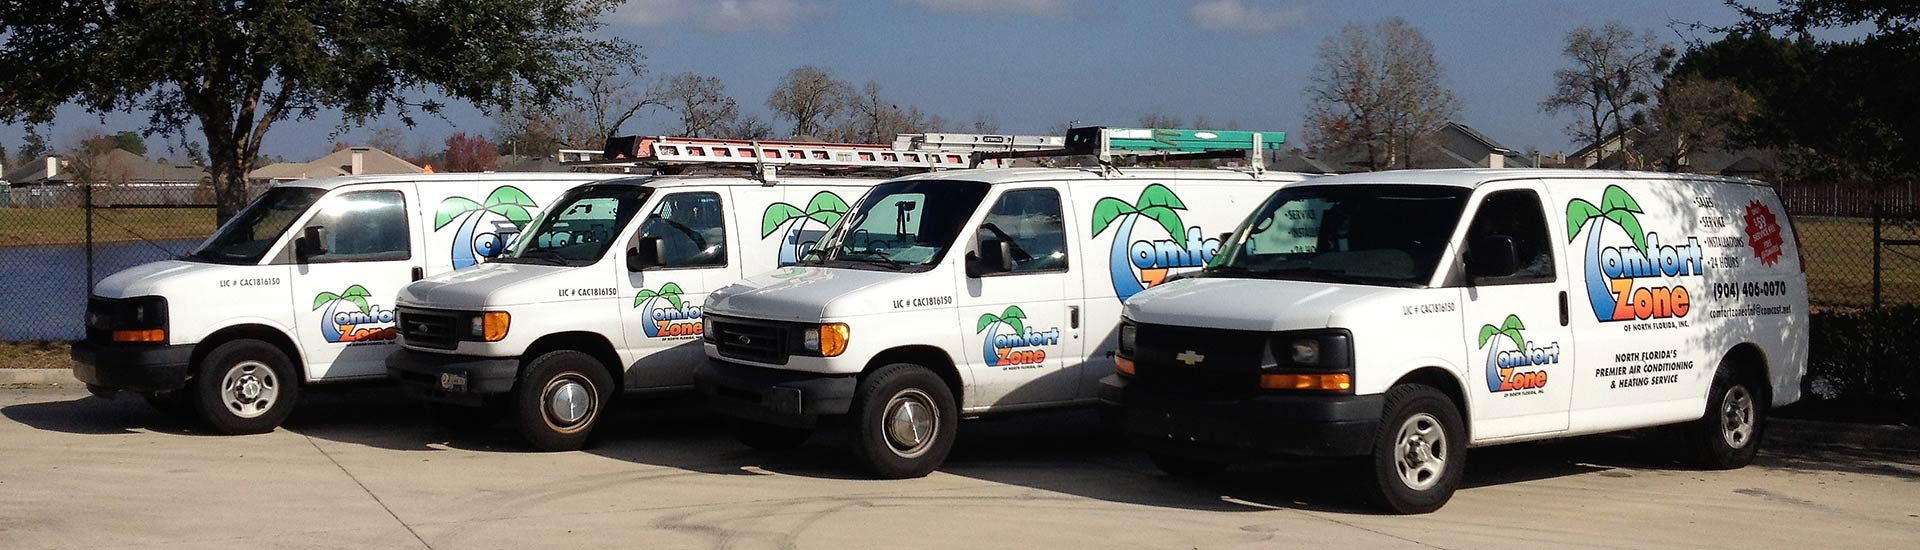 Heating Air Conditioning Company